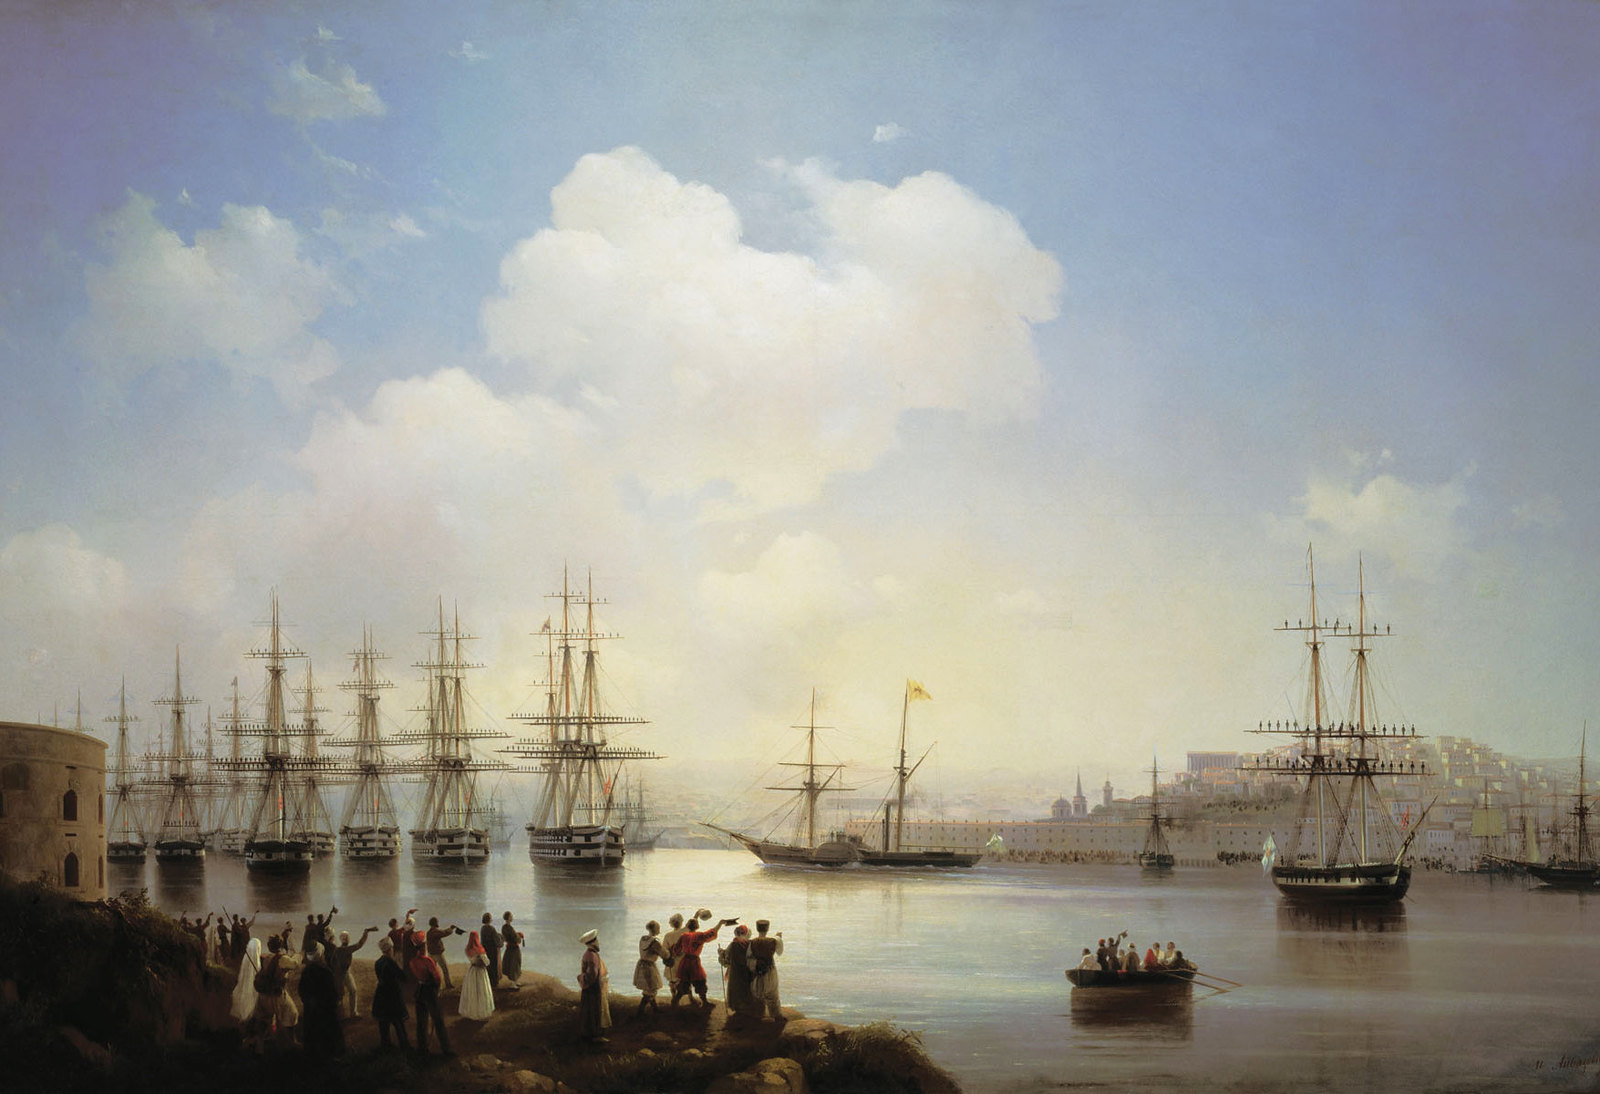 Russian squadron on the raid of Sevastopol by Ivan Aivazovsky, 1846